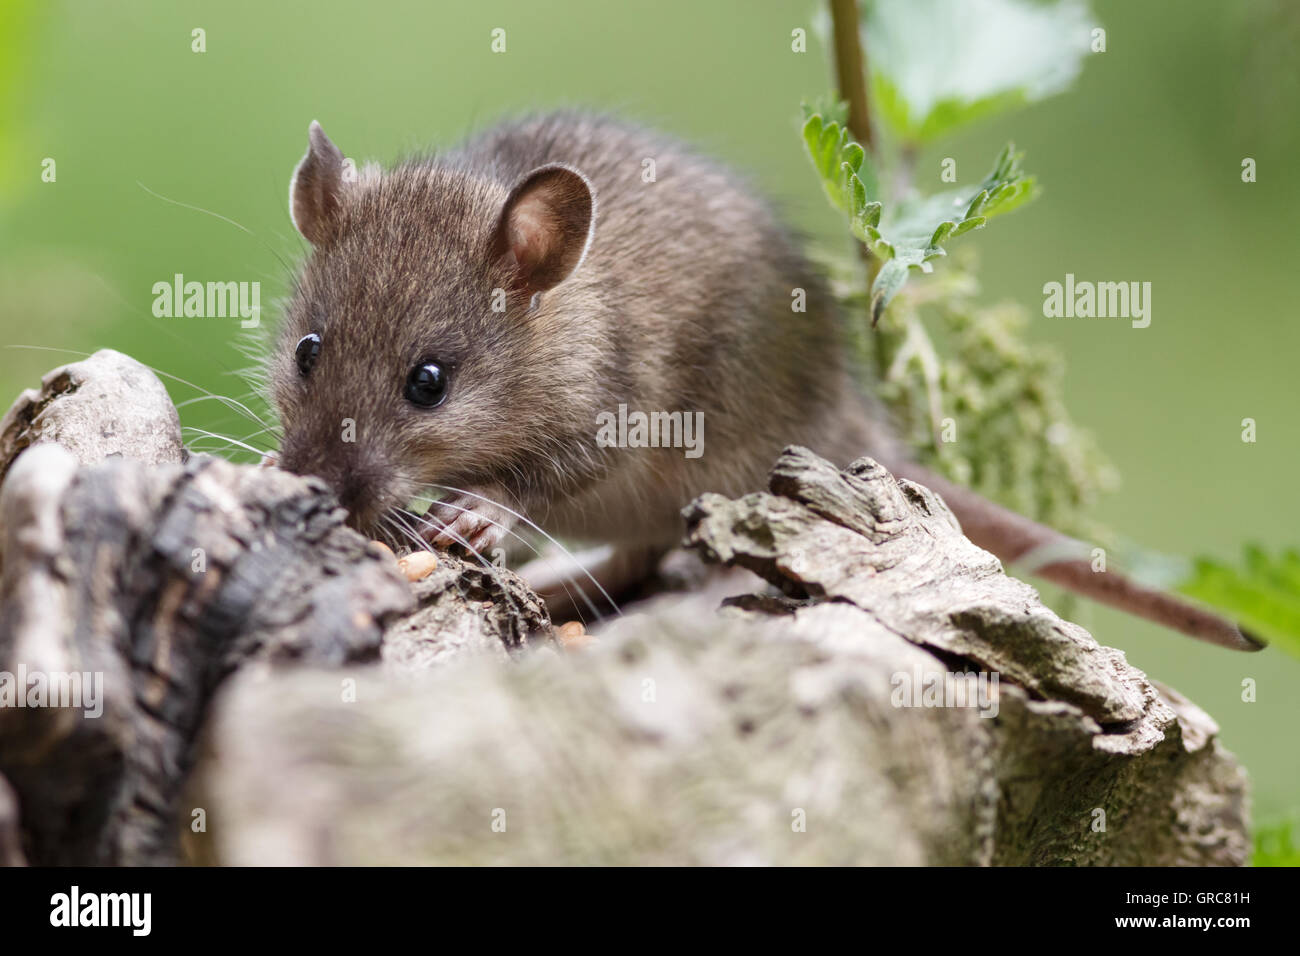 Mouse In Search Of Food - Stock Image